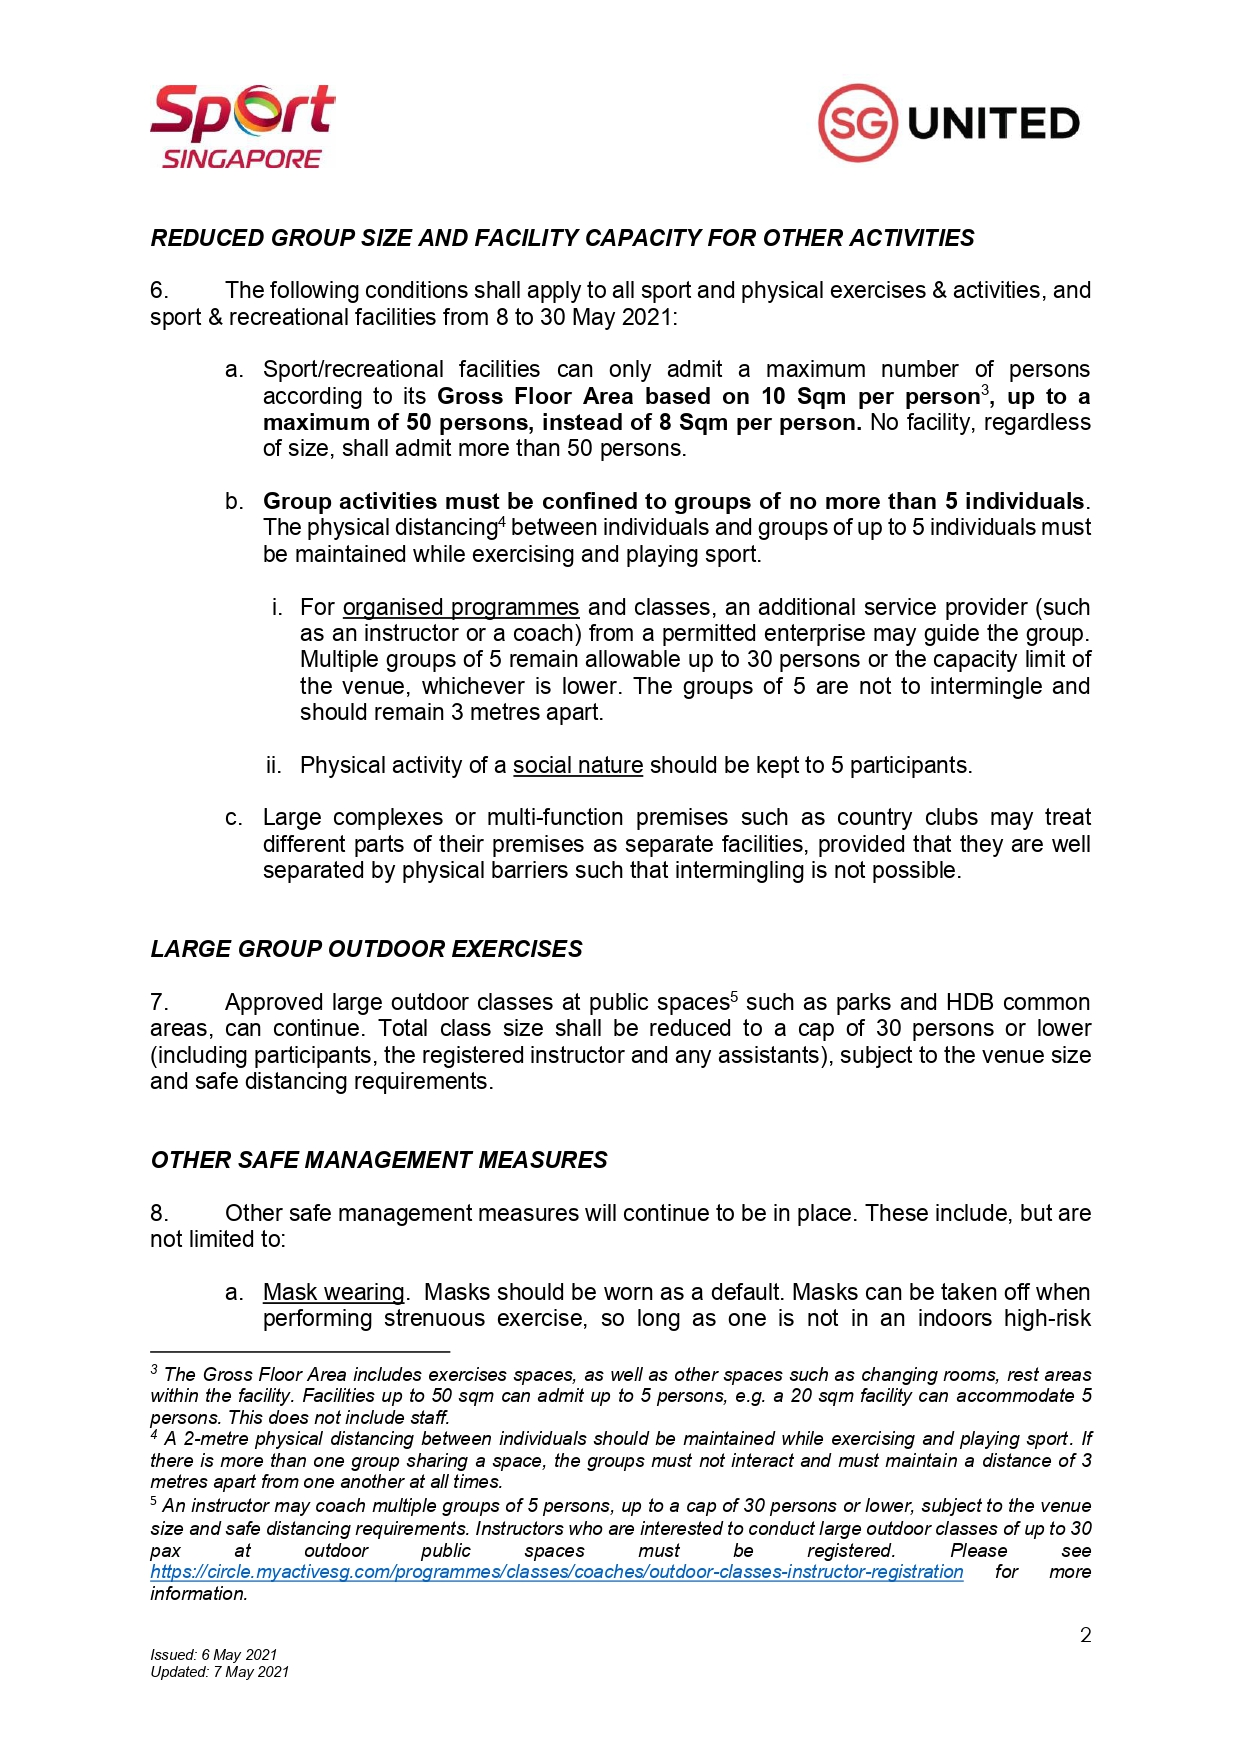 (Updated As Of 7 May 2021) Stricter Safe Management Measures For Sport And Physical Exercise and Activity (8 to 30 May)_pages-to-jpg-0002